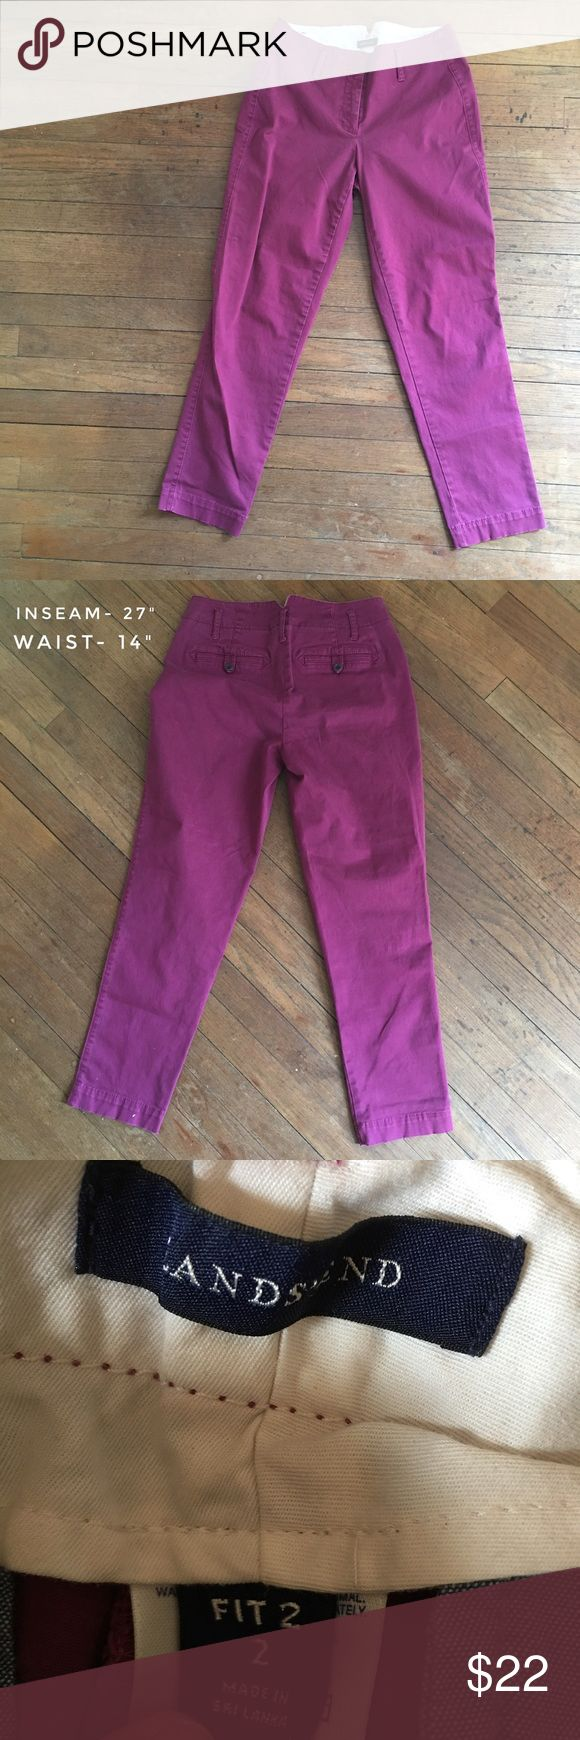 LANDS END berry crops Fit 2- size 2- adorable ankle cut pants by Lands End- excellent quality- measurements are listed in photos- final pics are pulled from online to show fit as these are too small for me to model Lands' End Pants Ankle & Cropped